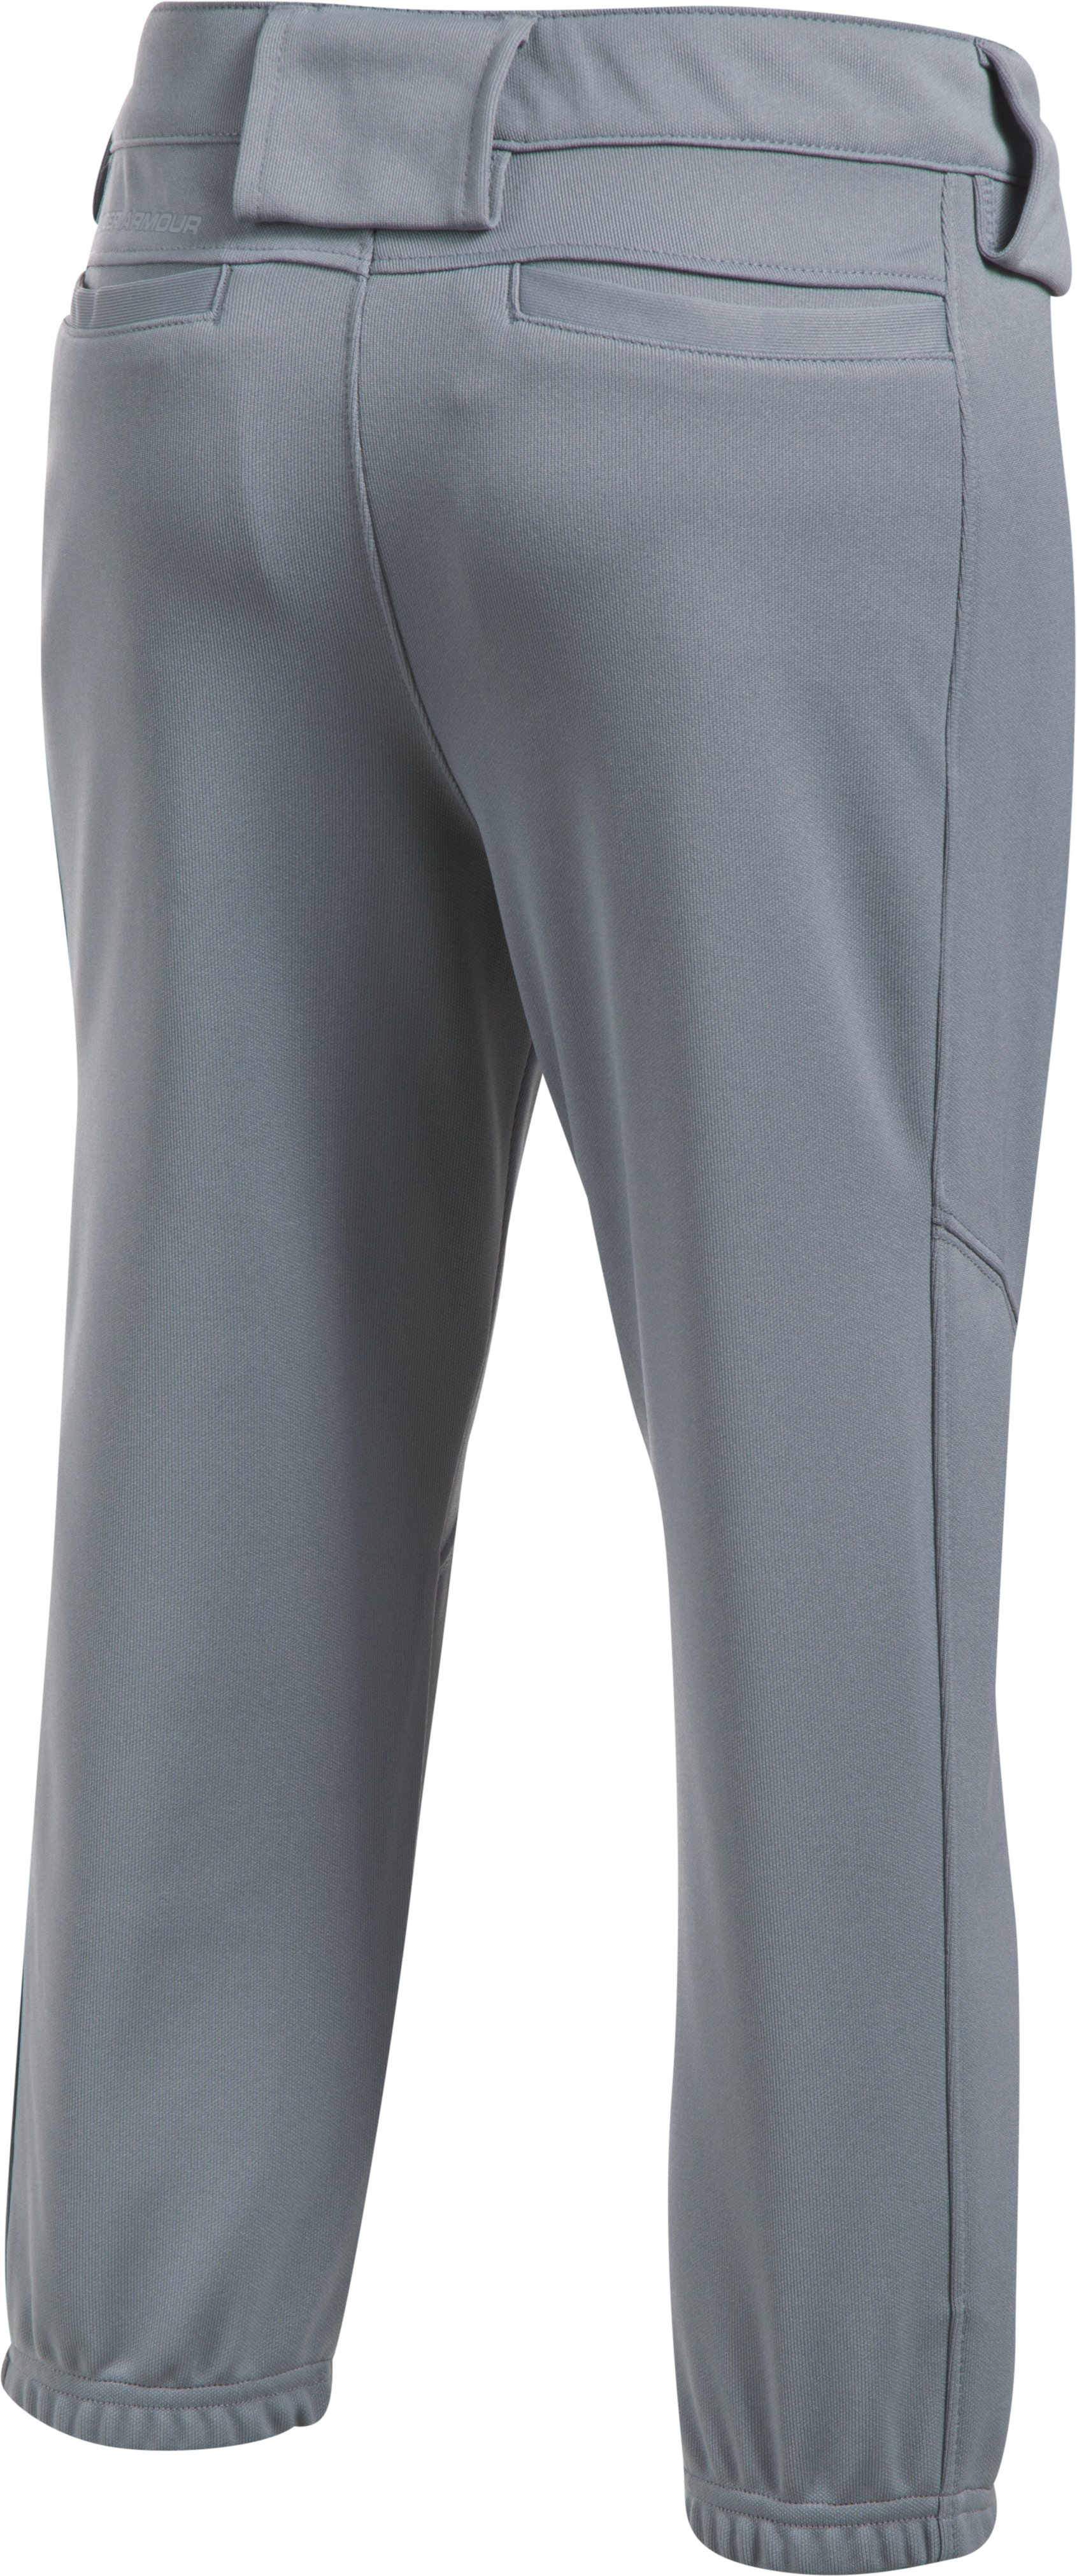 Girls' UA Base Runner Softball Pants, Steel